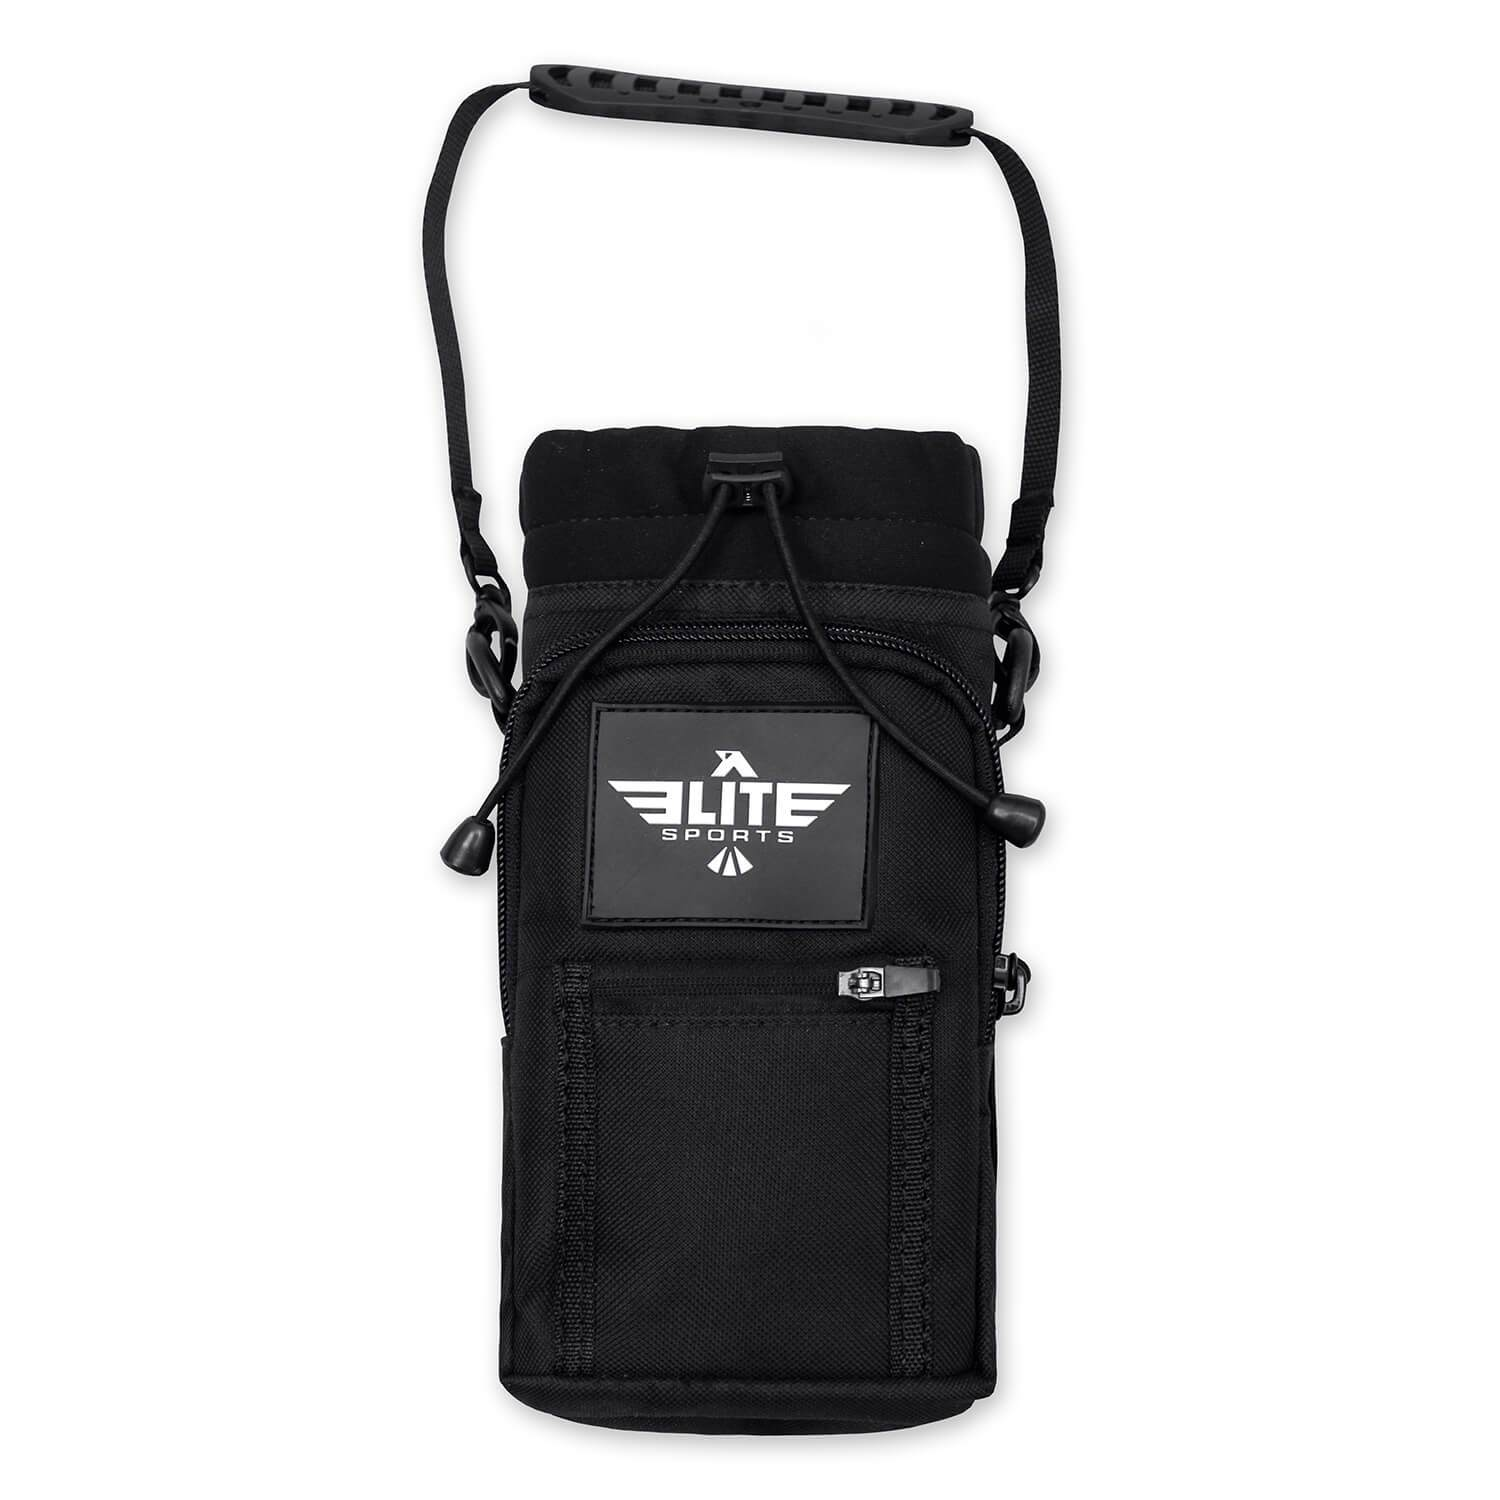 Load image into Gallery viewer, Elite Sports Water Bottle Bag